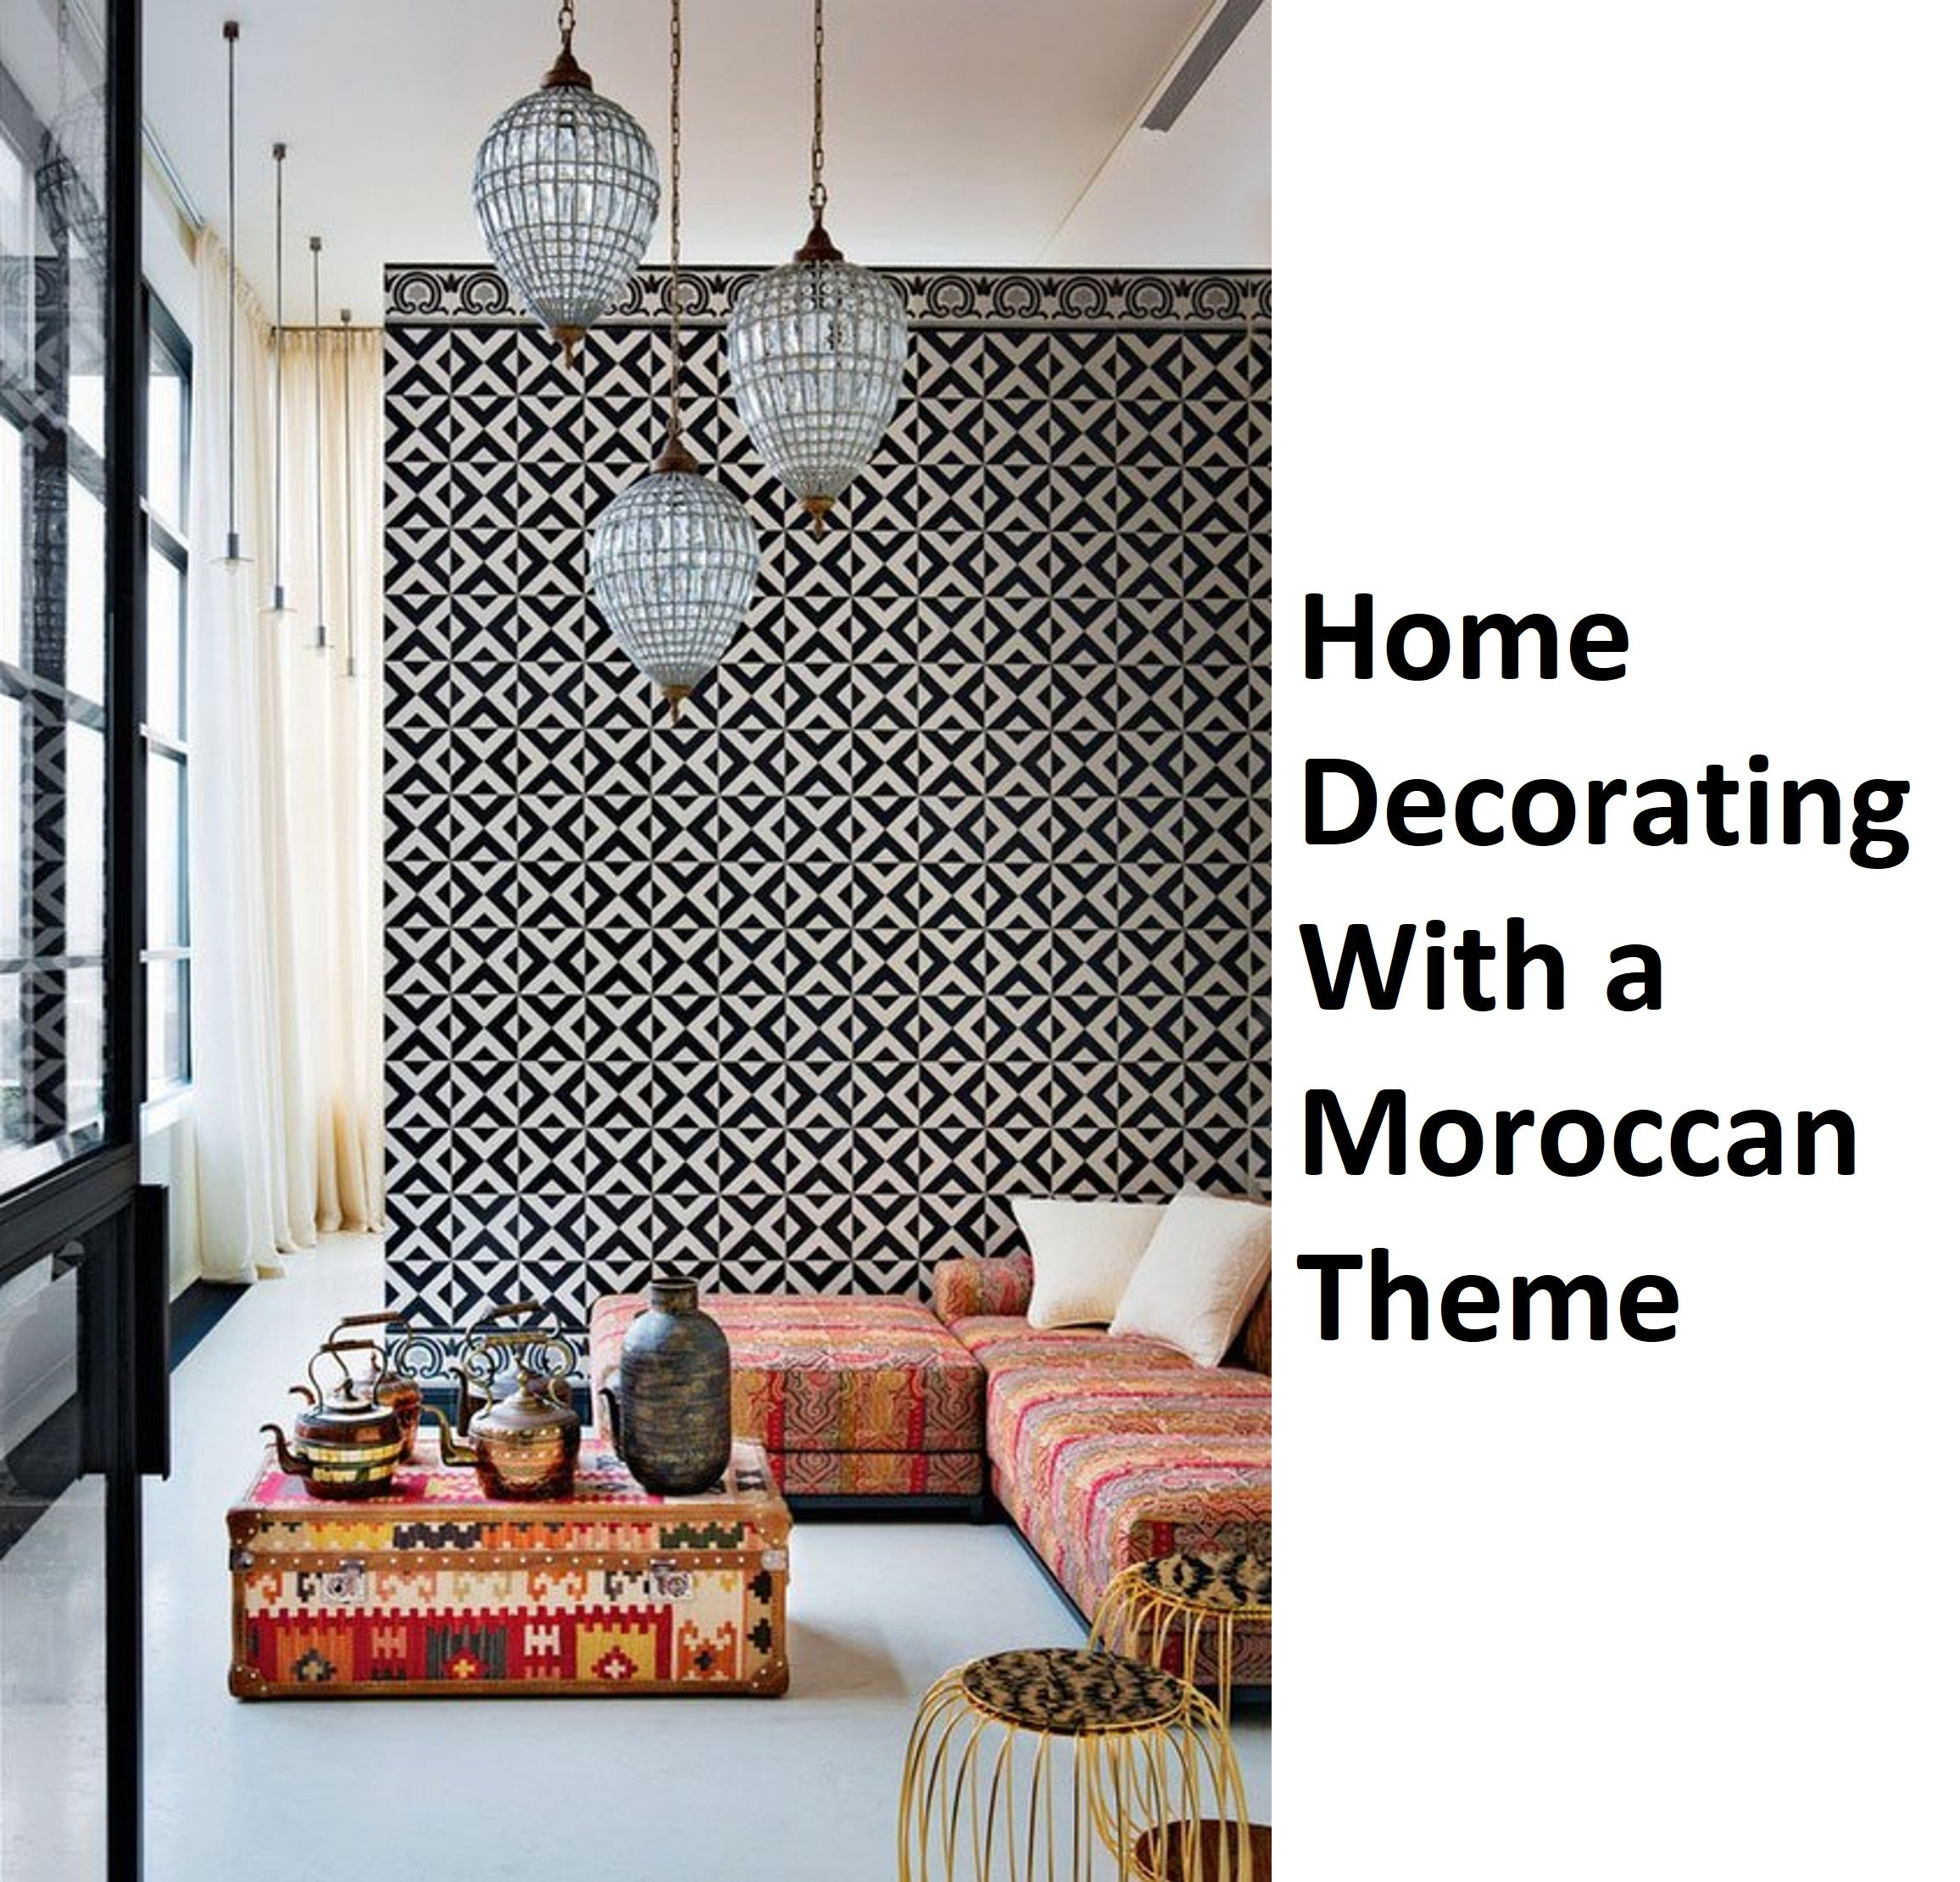 Home Decorating With a Moroccan Theme,moroccan decor diy,french moroccan decor,moroccan decor ideas living room,moroccan decor bedroom,moroccan style home exterior,bohemian moroccan decor,authentic moroccan decor,moroccan decor amazon